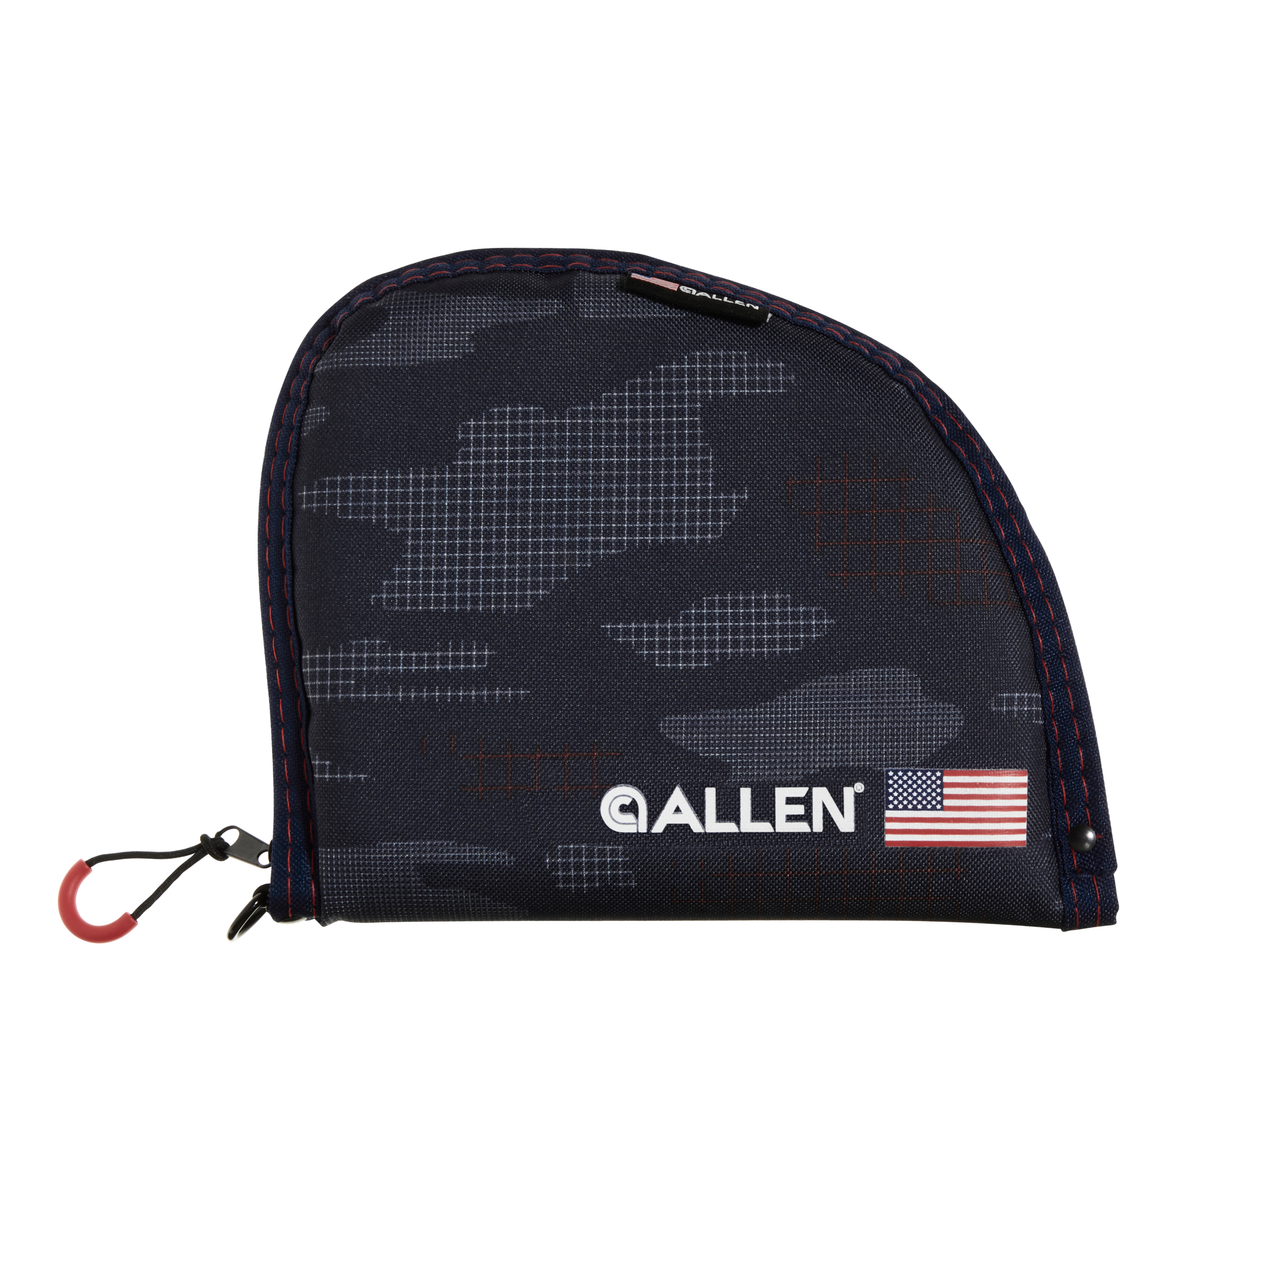 Allen Patriot, Allen 950-9 Patriotic 9in Pistol Case Patriotic 9i